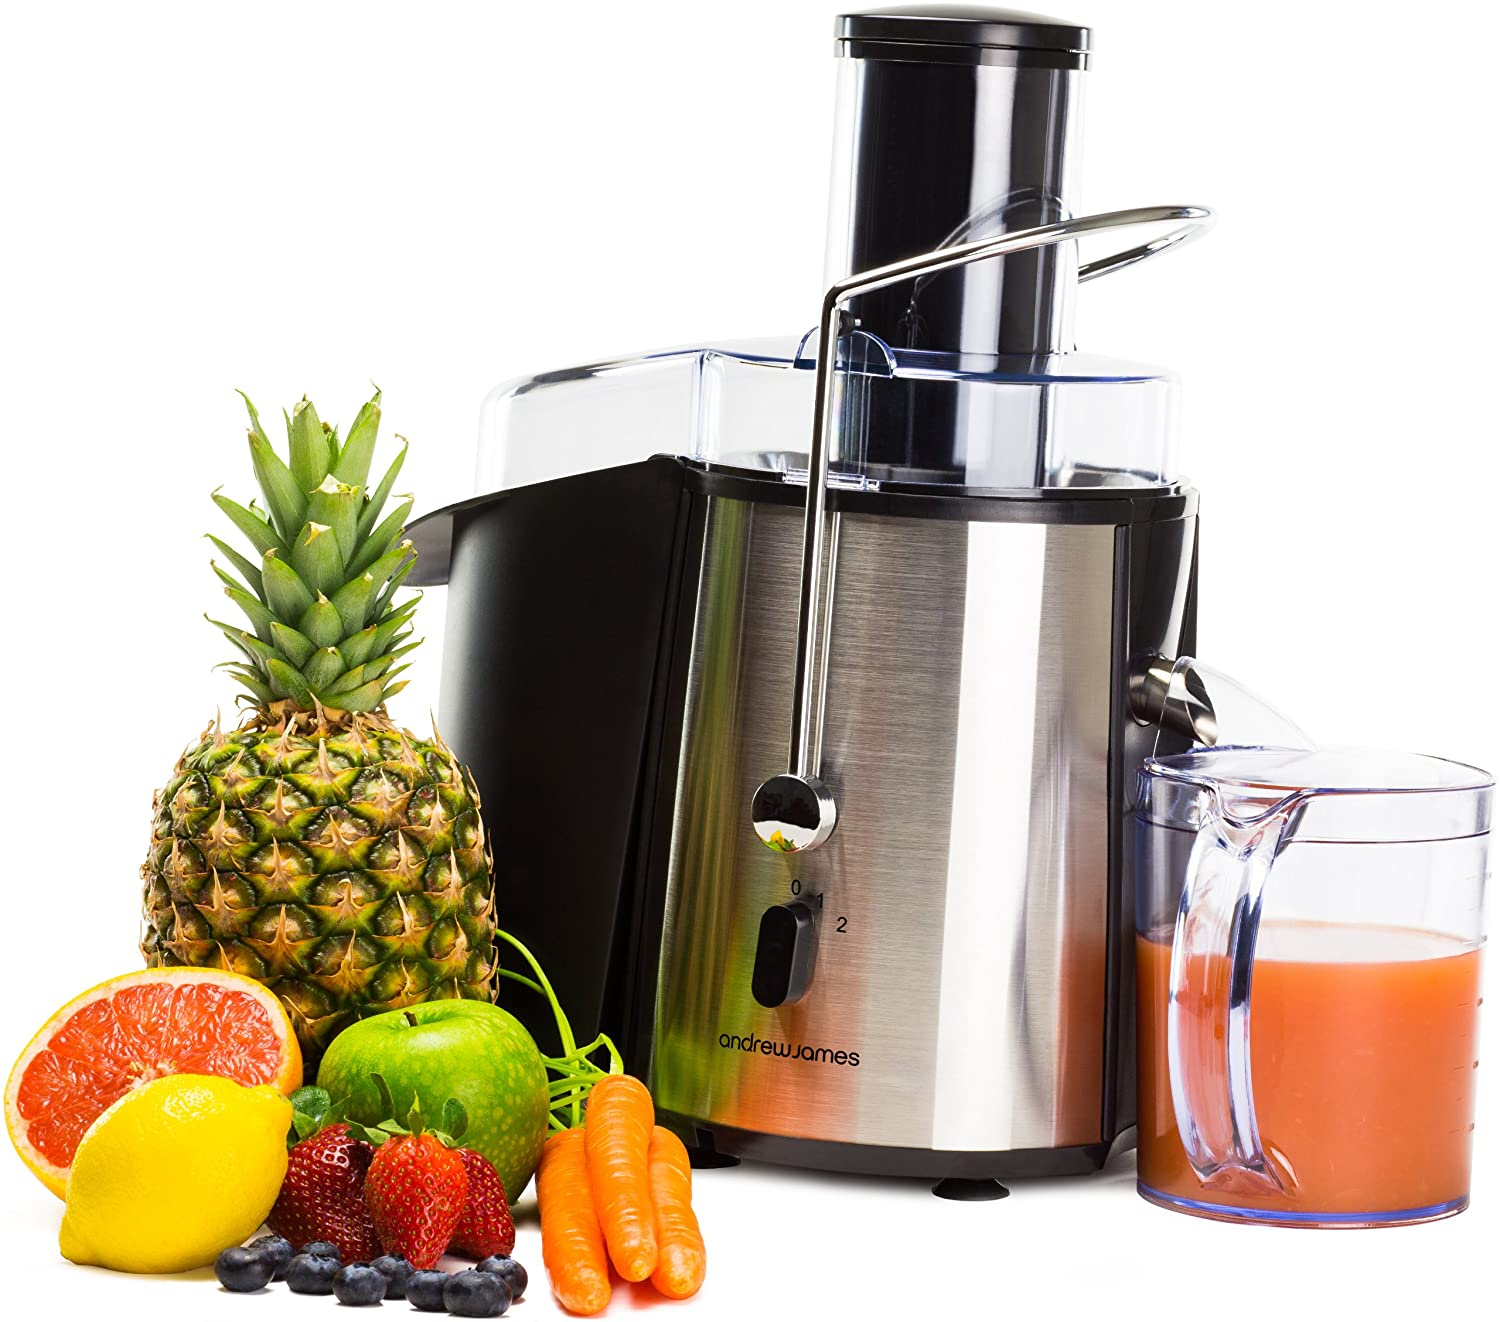 Andrew james professional 850w whole fruit power juicer, includes ...